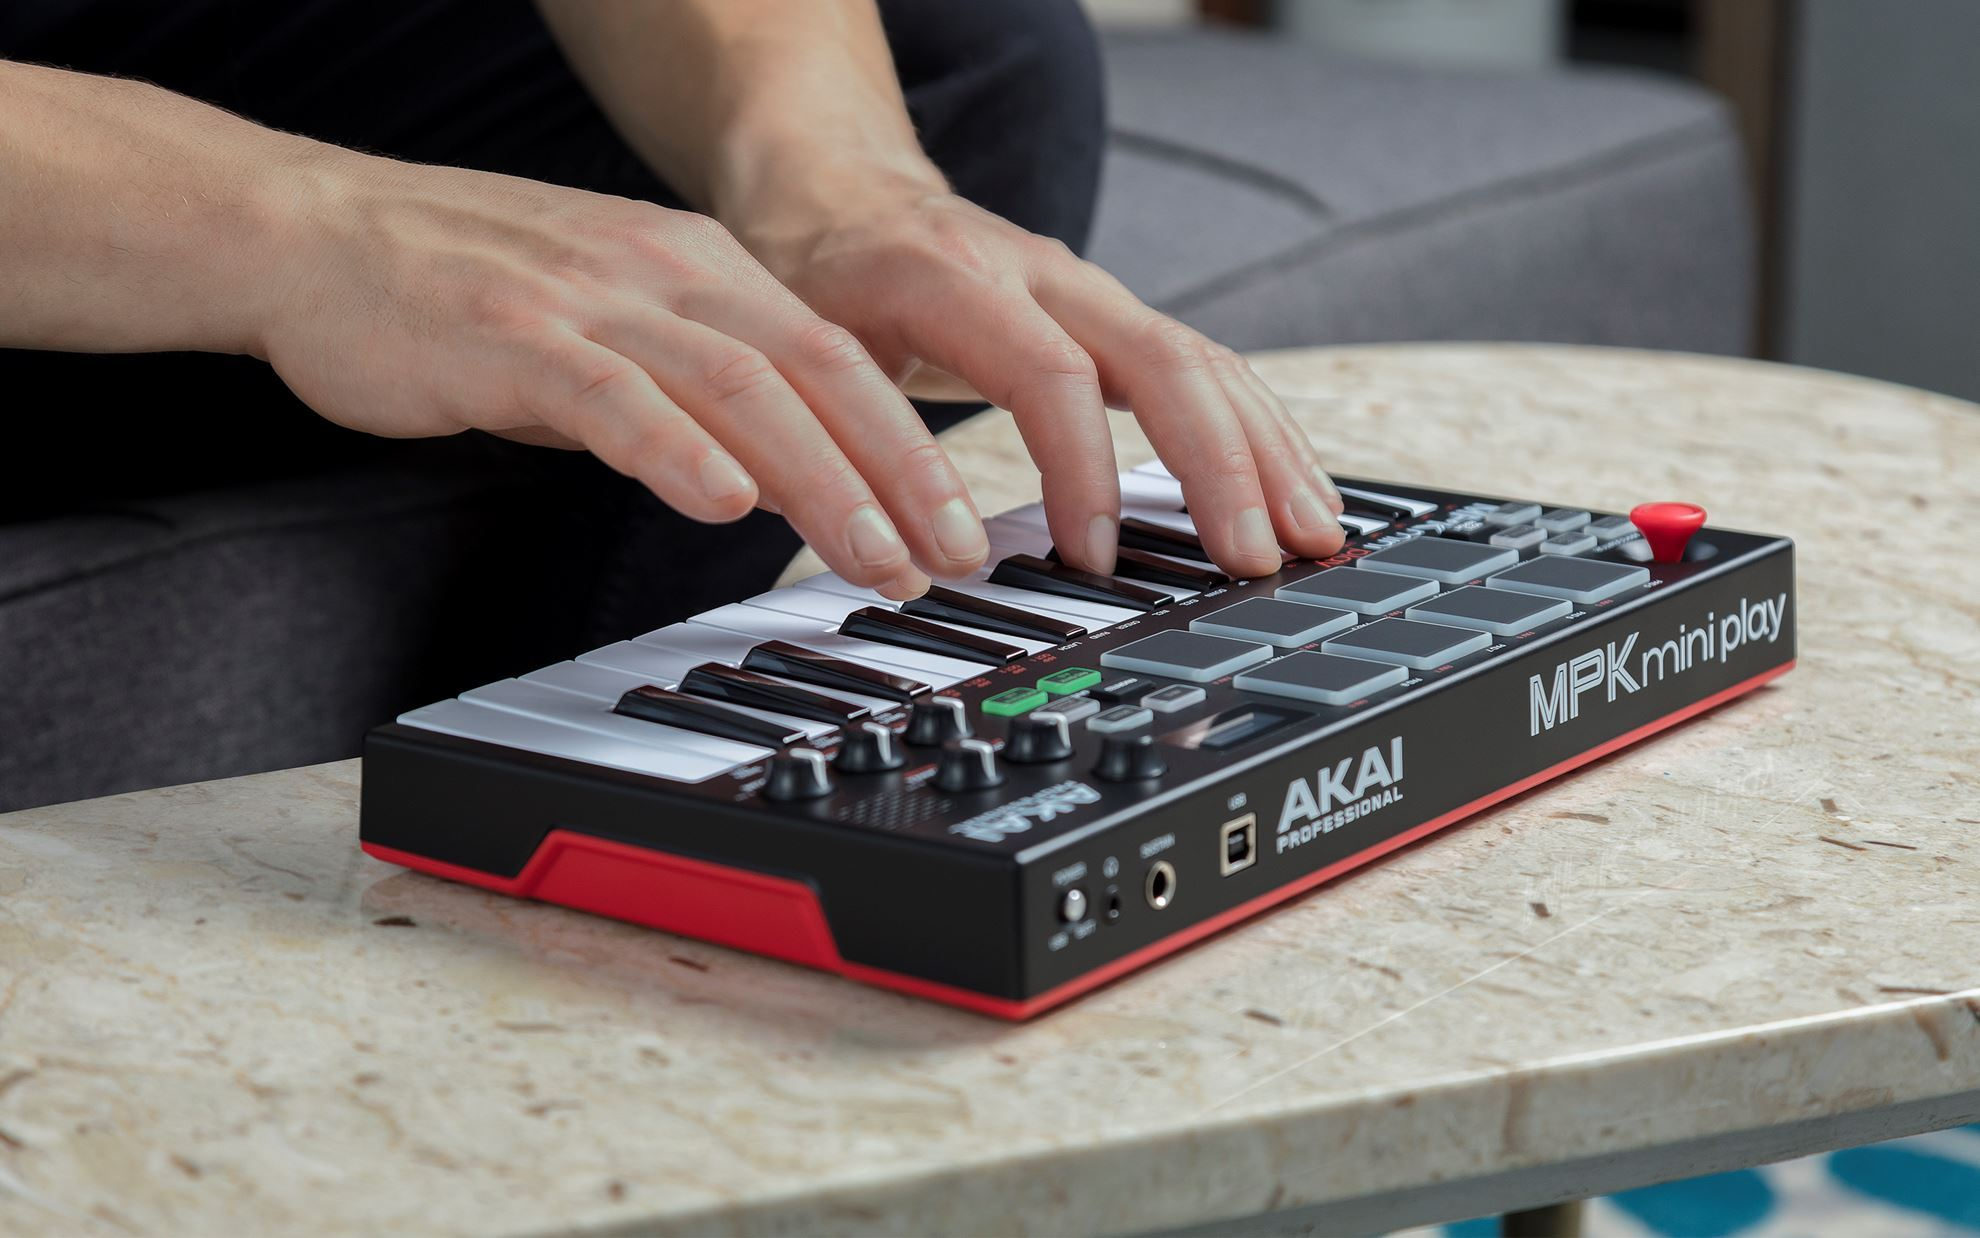 Akai MPK Mini Play Standalone Keyboard and MIDI Controller with Sounds and Speaker